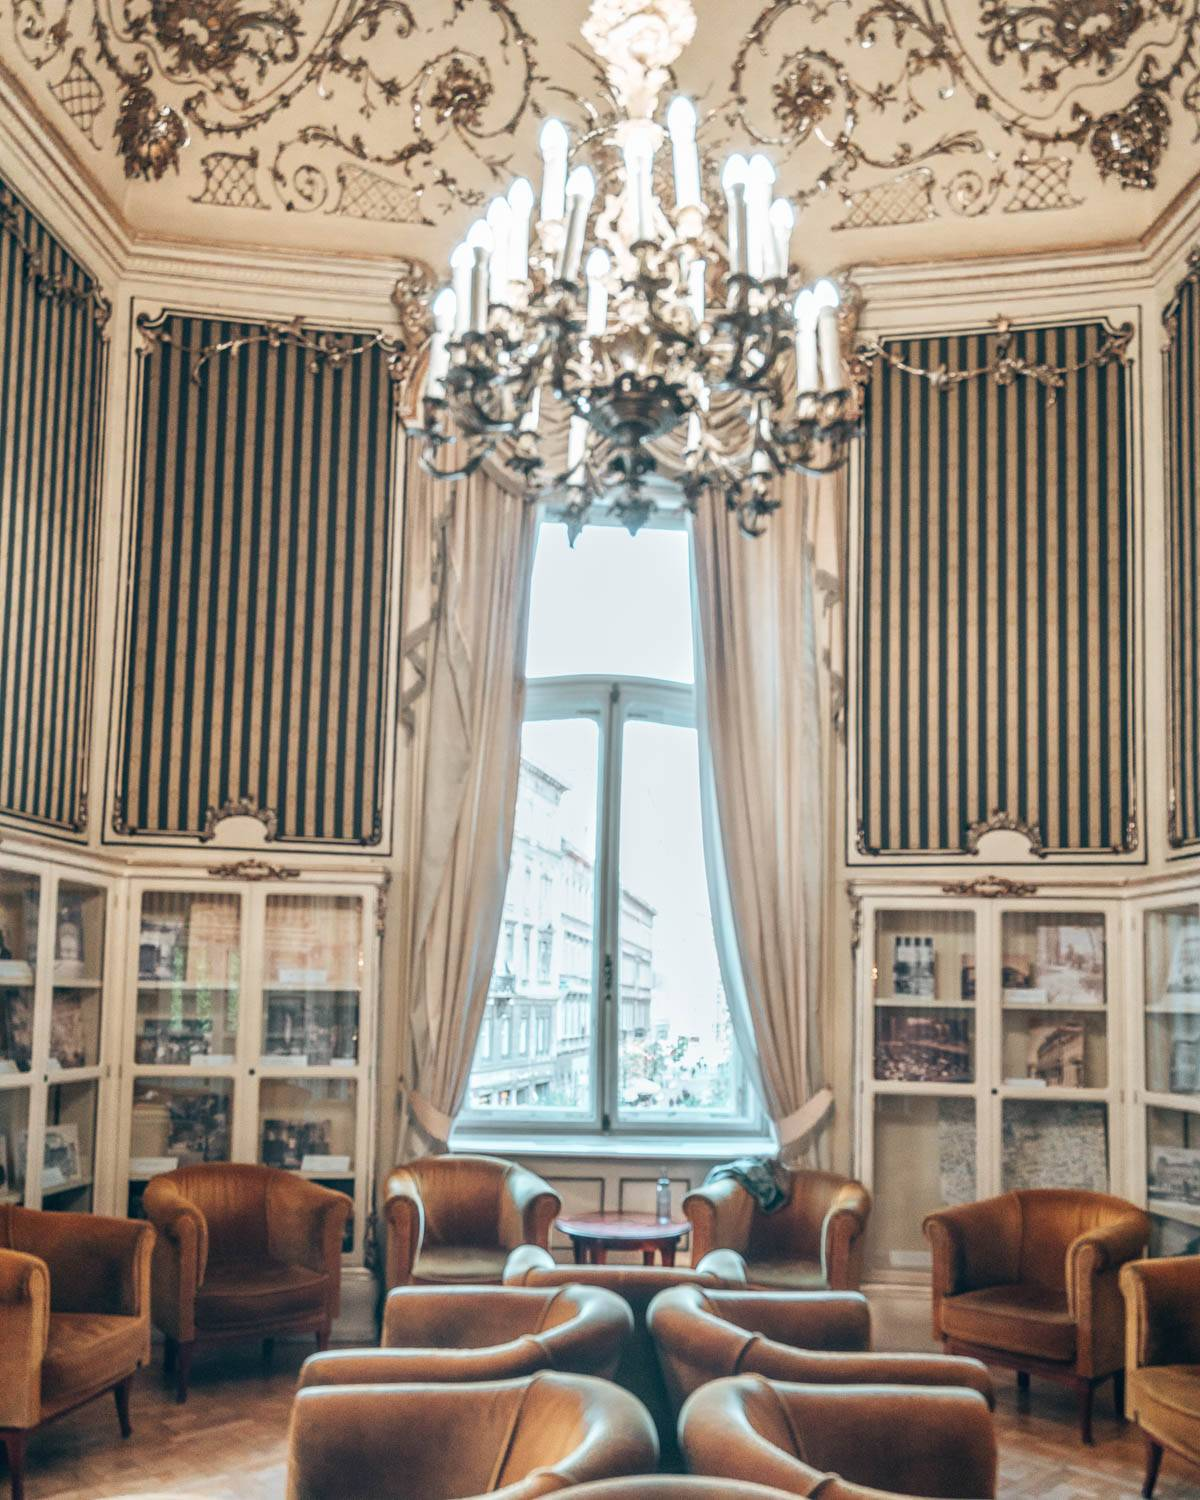 Metropolitan Ervin Szabó Library is one of the prettiest photo spots for instagrammers in Budapest, and more than worth a visit!